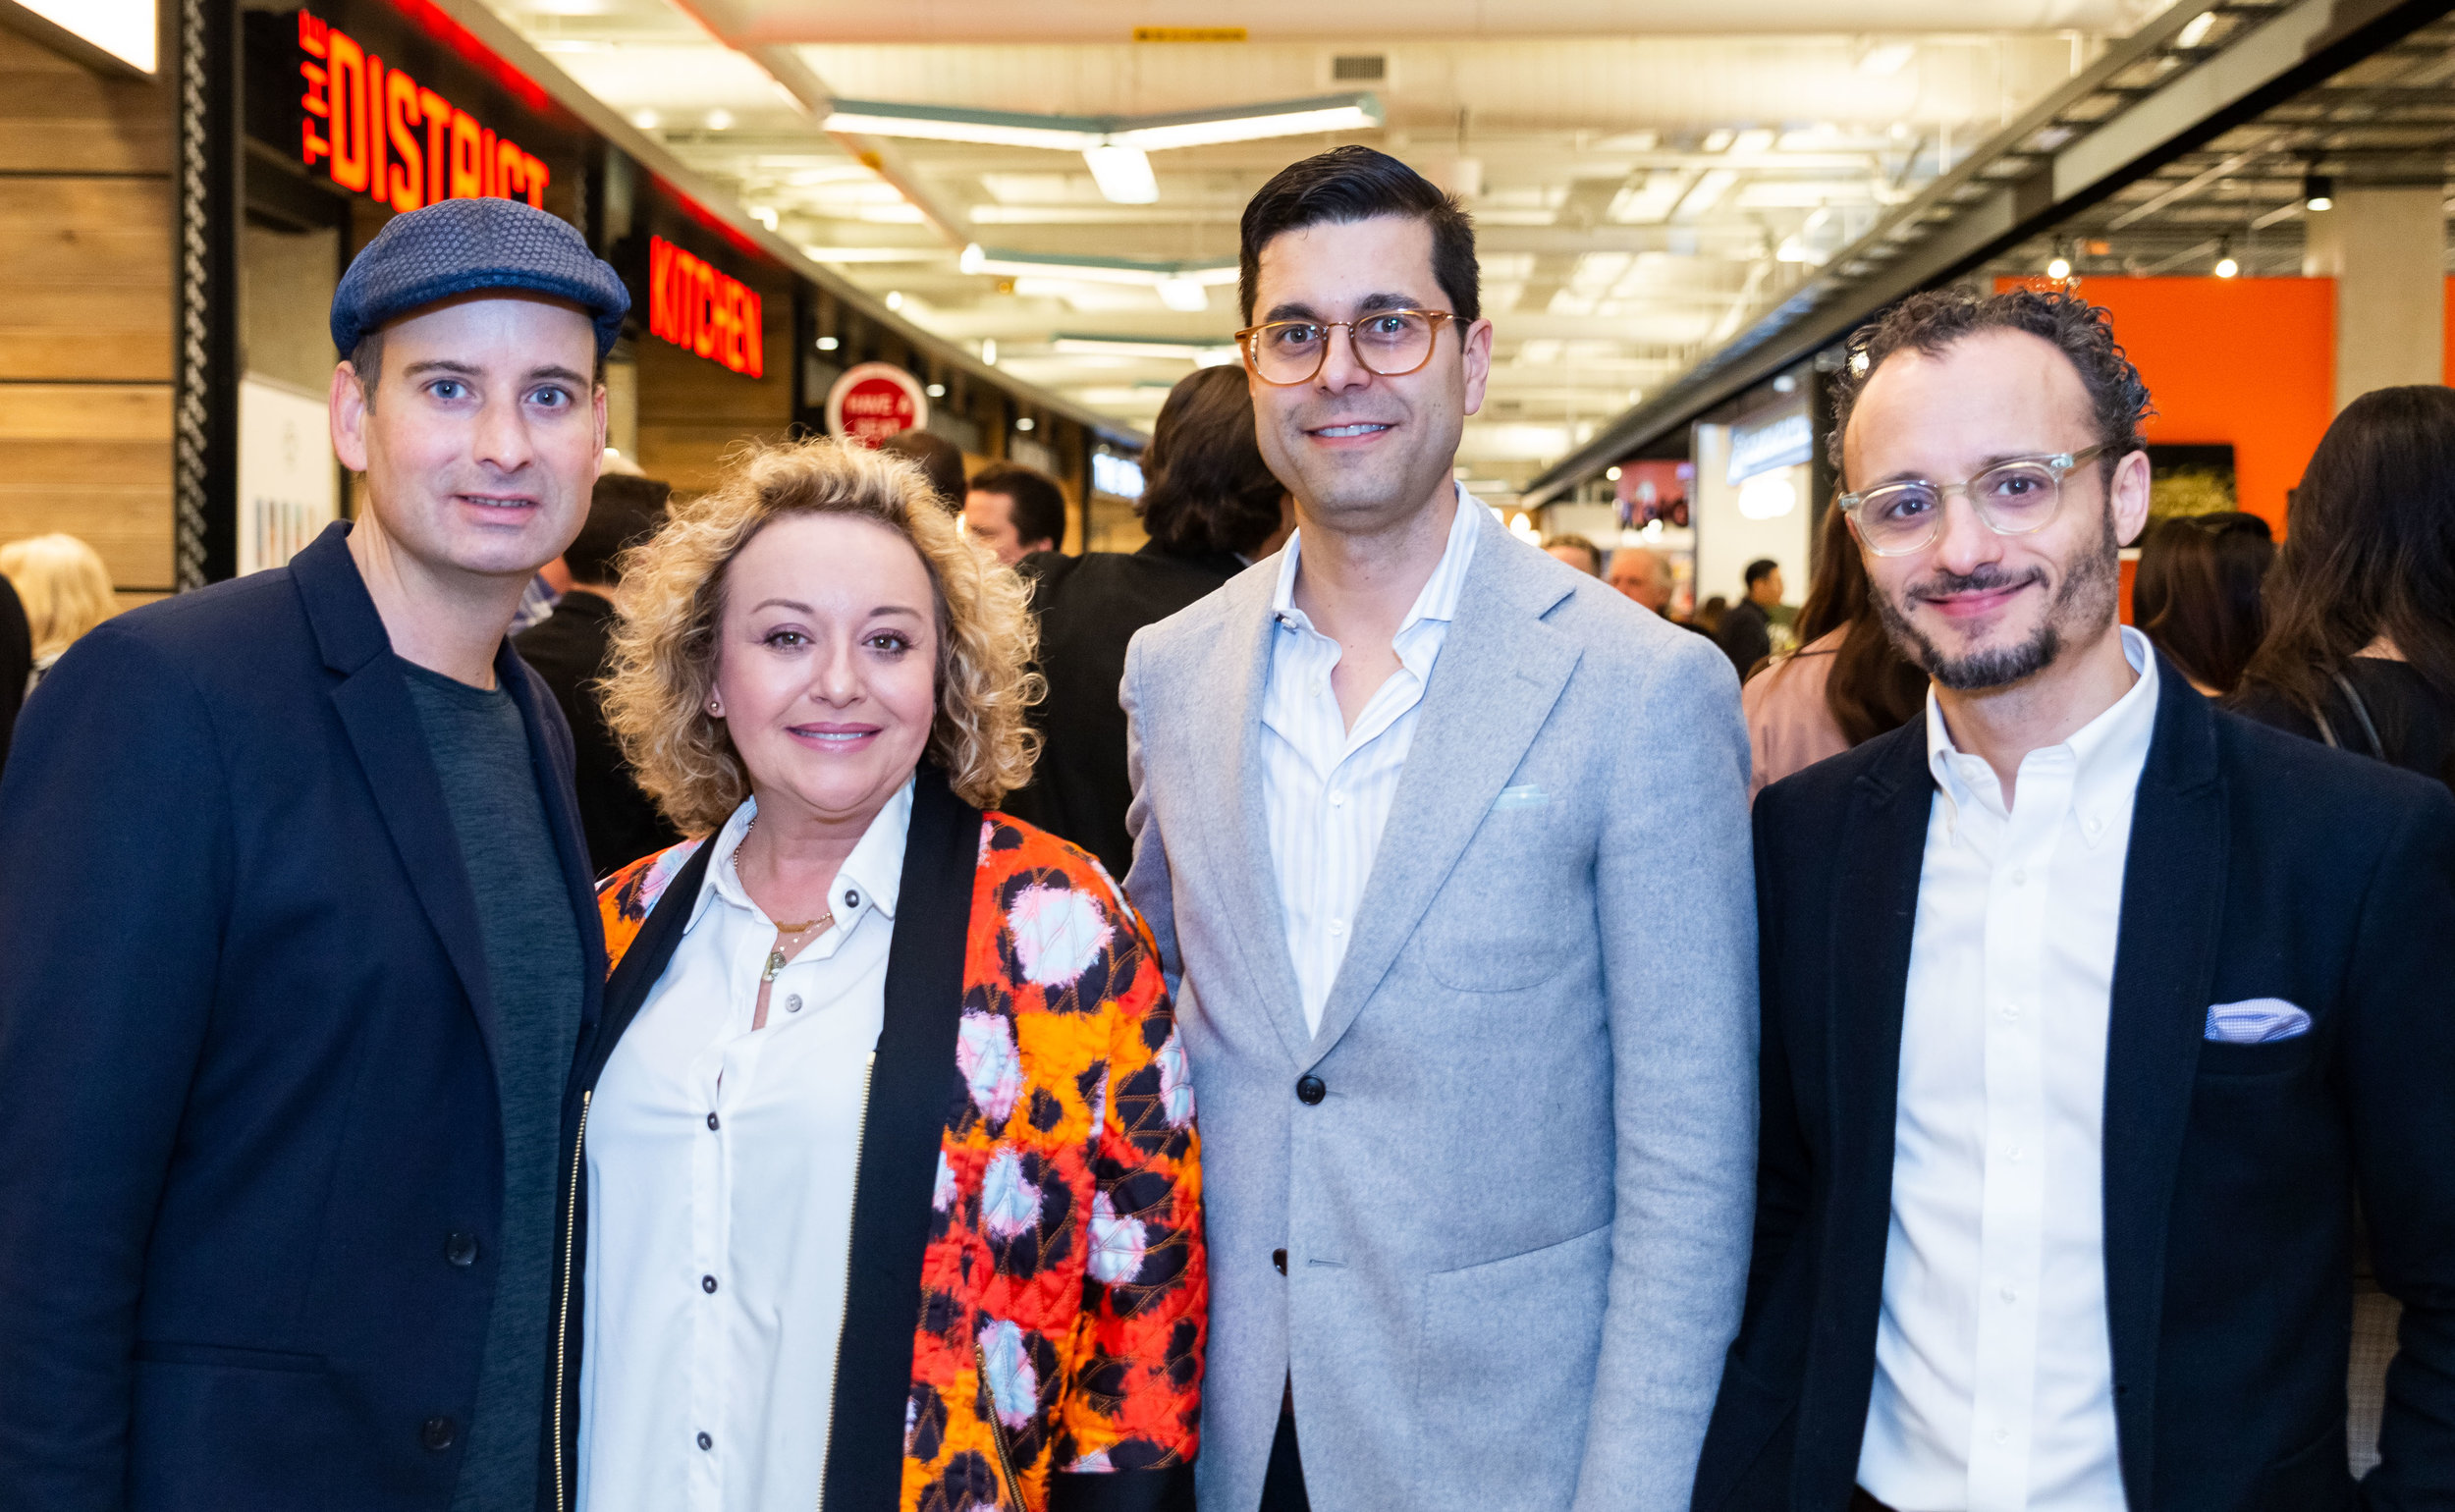 At the pre-opening event on Friday, March 29. Left-to-right: Craig Patterson, Editor-in-Chief of Retail Insider.  Yana Brikker, Stylist .  Nick Iozzo , Senior Director, Retail Innovation and Lead Generation at Oxford Properties Group.  Tony Manni , Manager, National Specialty Leasing at Oxford Properties Group.